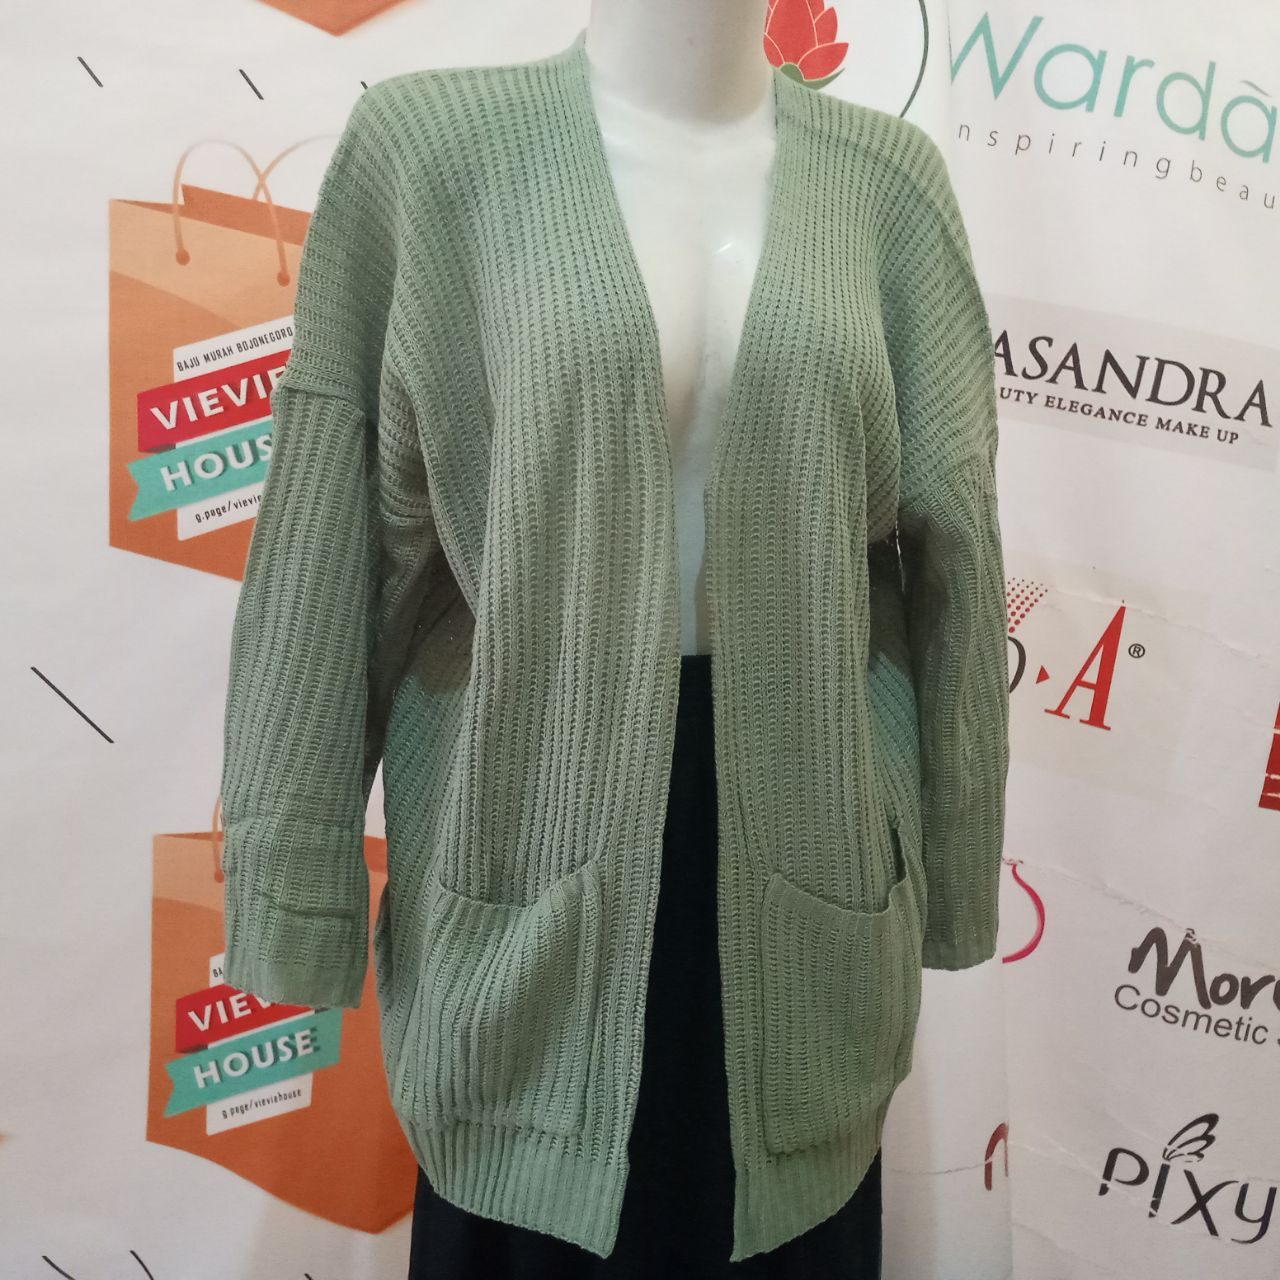 ini adalah Rajut Locy Cardy Mint, size: XXL, material: Knitt, color: Green mint, brand: Rajut cardy indonesia, age_group: all ages, gender: female